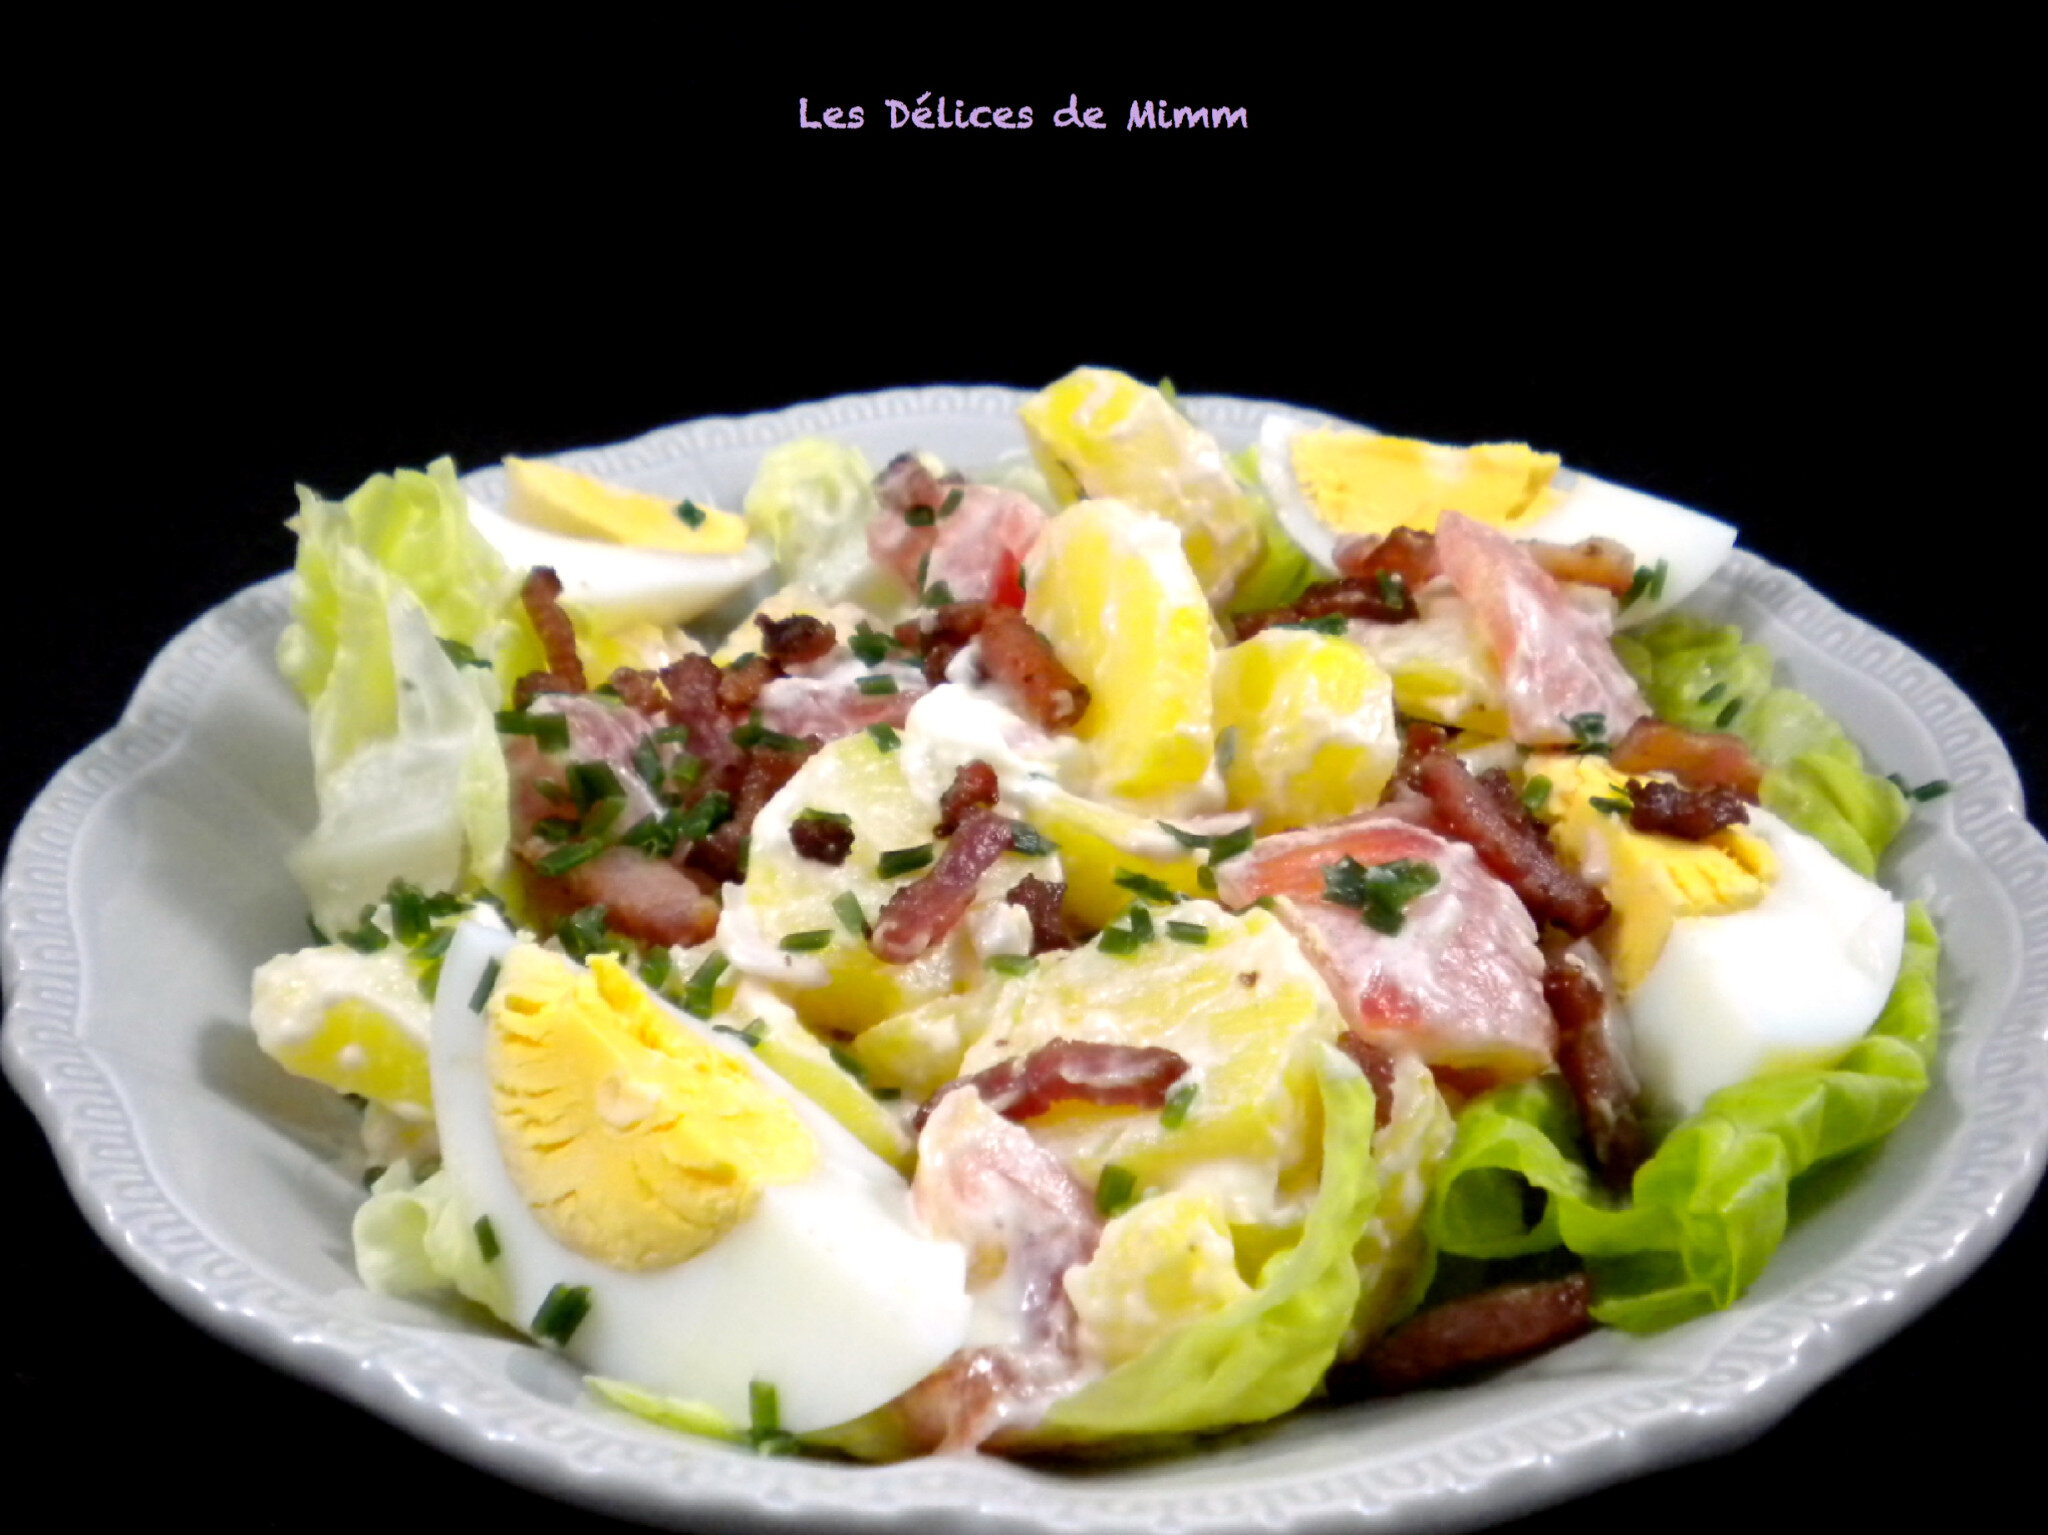 Recettes Faciles Froides Recette Salade Froide Recette Salade Froide With Recette Salade